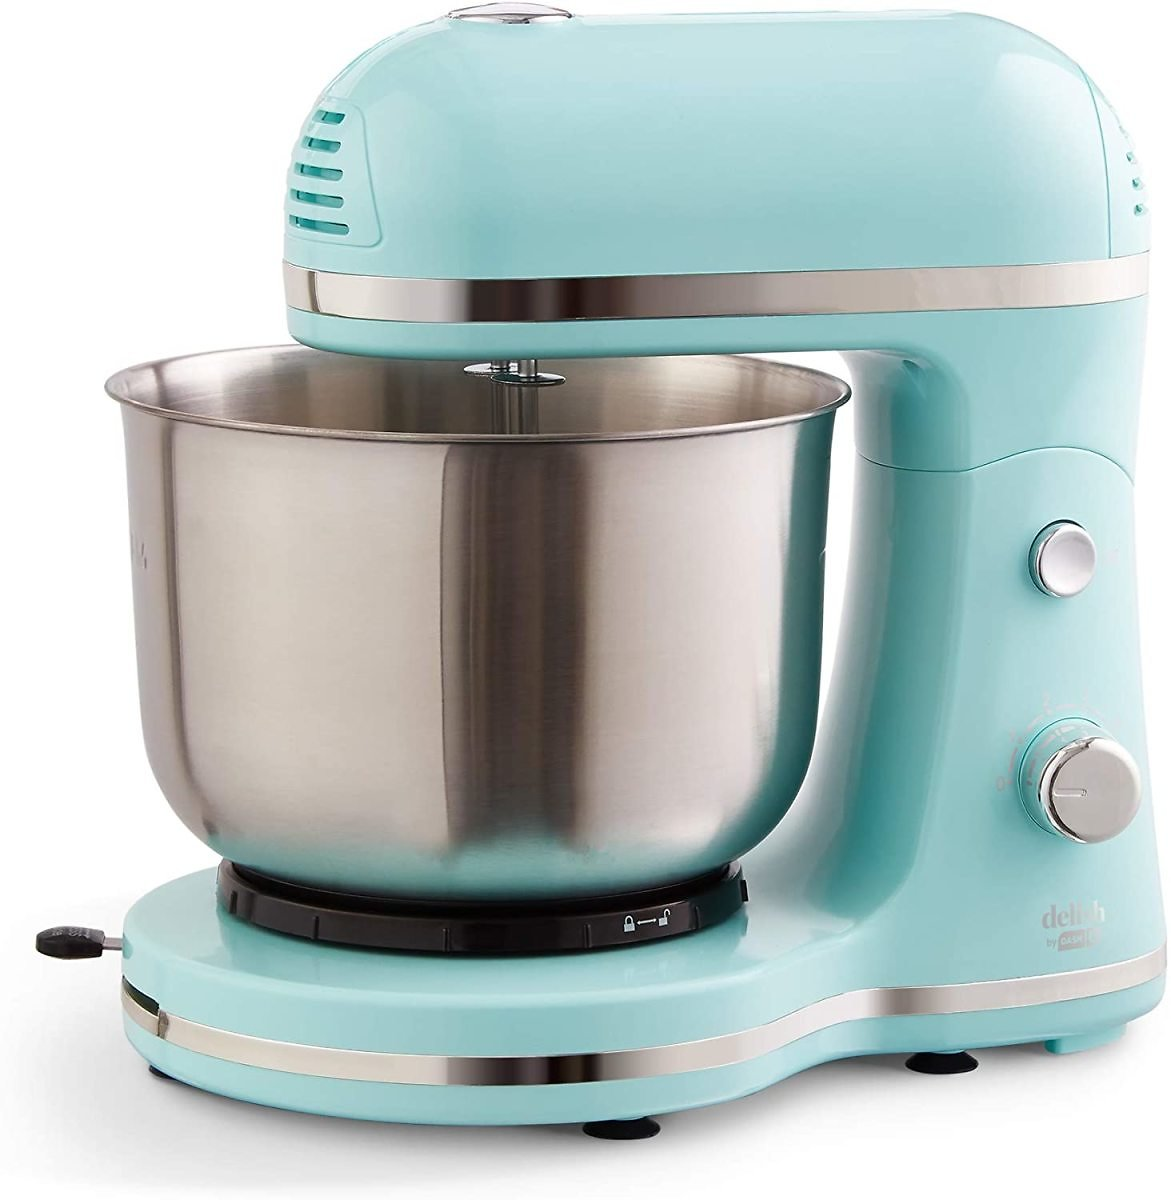 305-Qt Delish by Dash Compact Stand Mixer